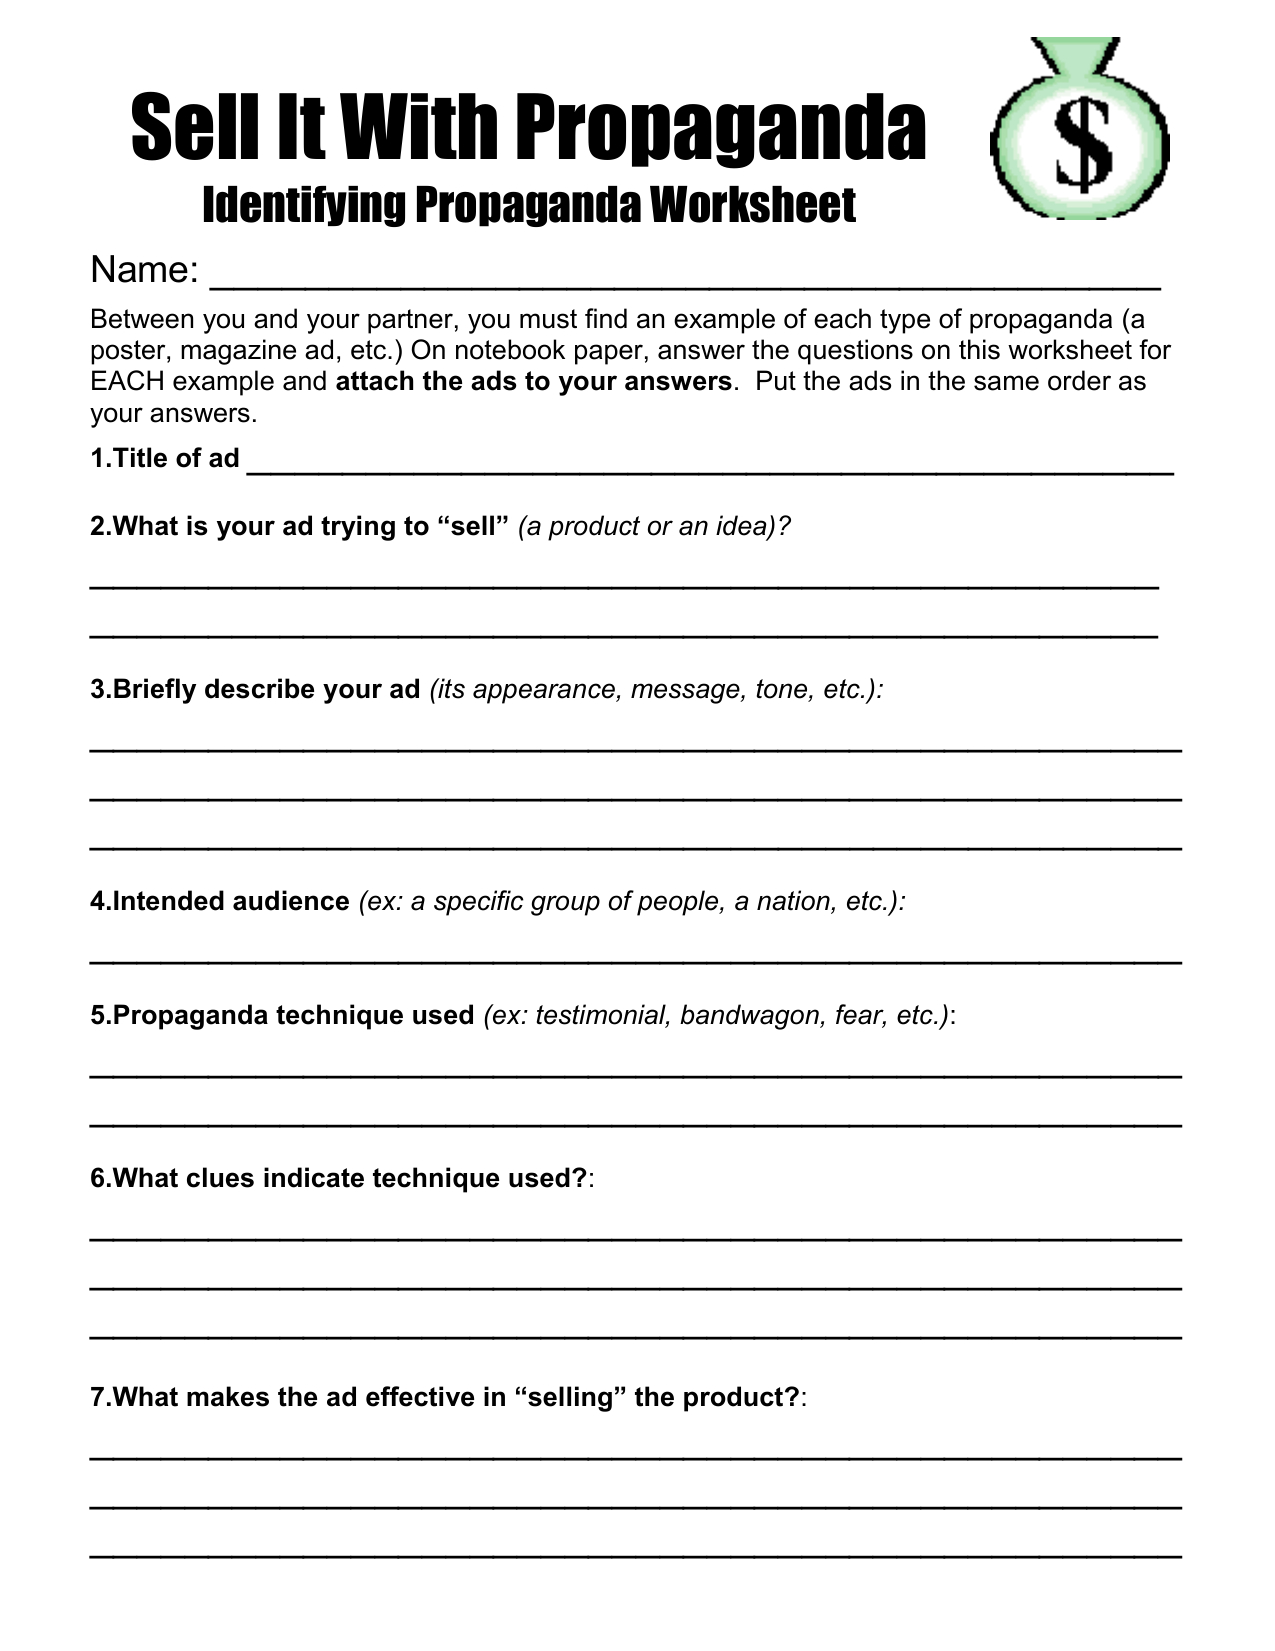 Identifying Propaganda Worksheet